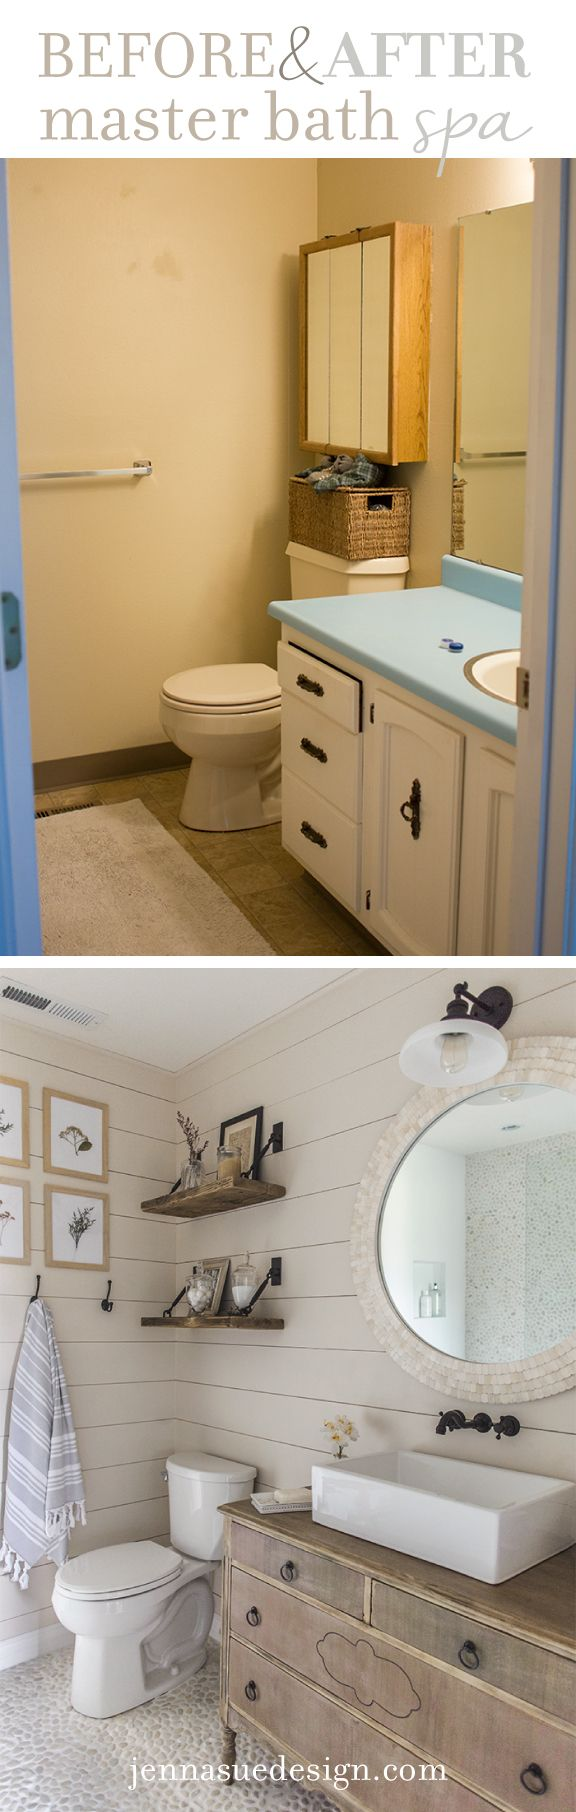 Diy Bathroom Remodel List 83 best home: bathrooms images on pinterest | bathroom ideas, room